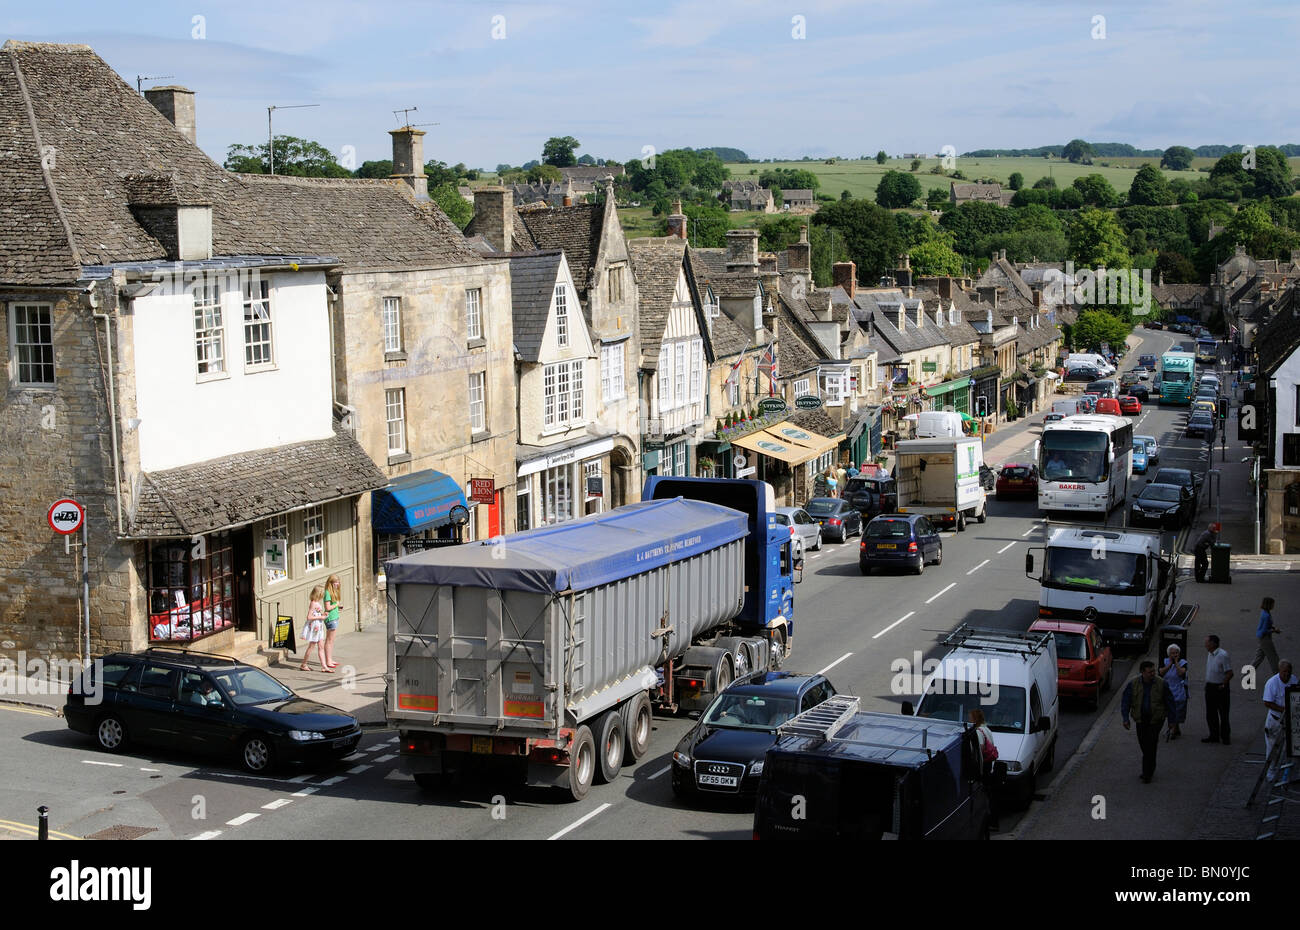 Traffic congestion in the Cotswolds town of Burford Oxfordshire haulage lorry enroute through the narrow main street - Stock Image